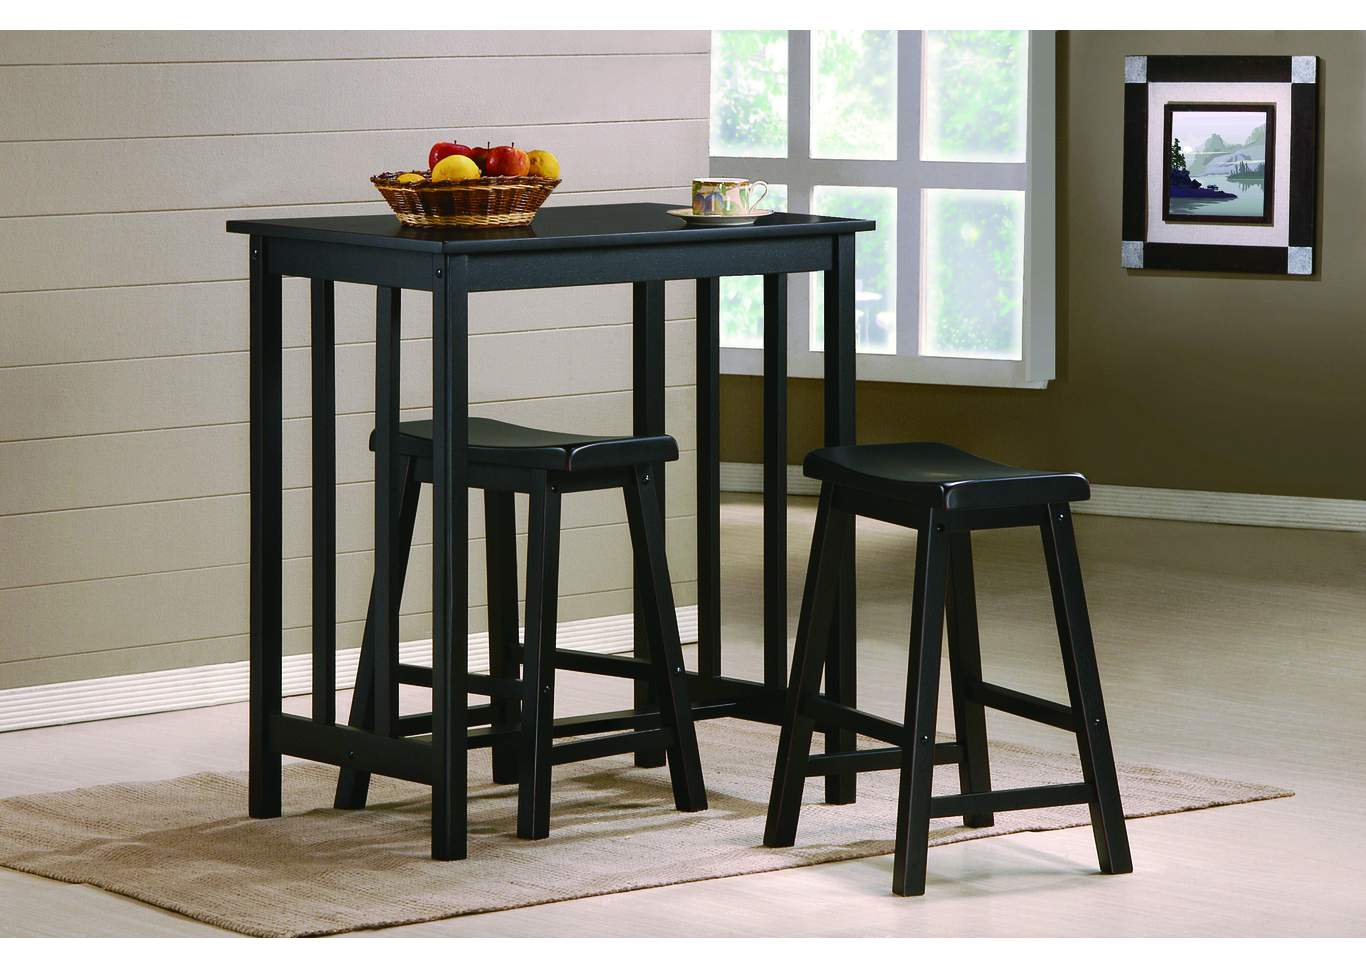 Dina Counter Height Table Set w/ 2 Stools,Crown Mark